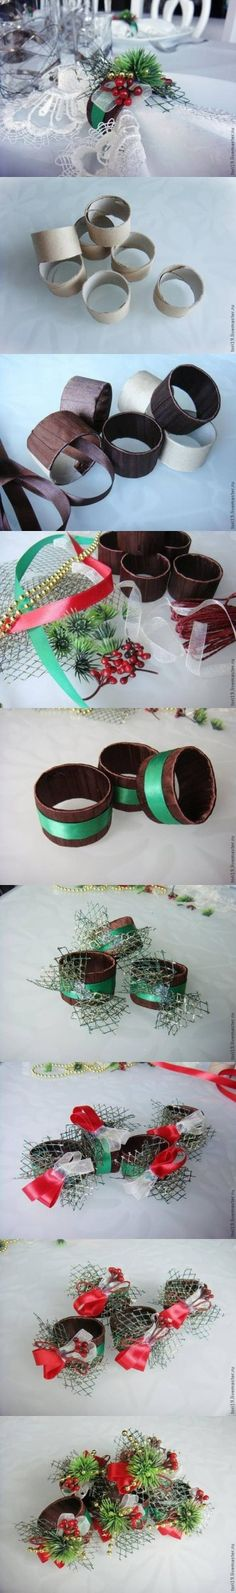 DIY Toilet Roll Napkin Rings diy craft crafts christmas diy crafts how to tutorial christmas tree christmas crafts christmas decorations christmas craft Toilet Paper Roll Art, Rolled Paper Art, Decorative Napkins, Custom Napkins, Diy Cadeau Noel, Navidad Diy, Paper Crafts, Diy Crafts, Diy Paper